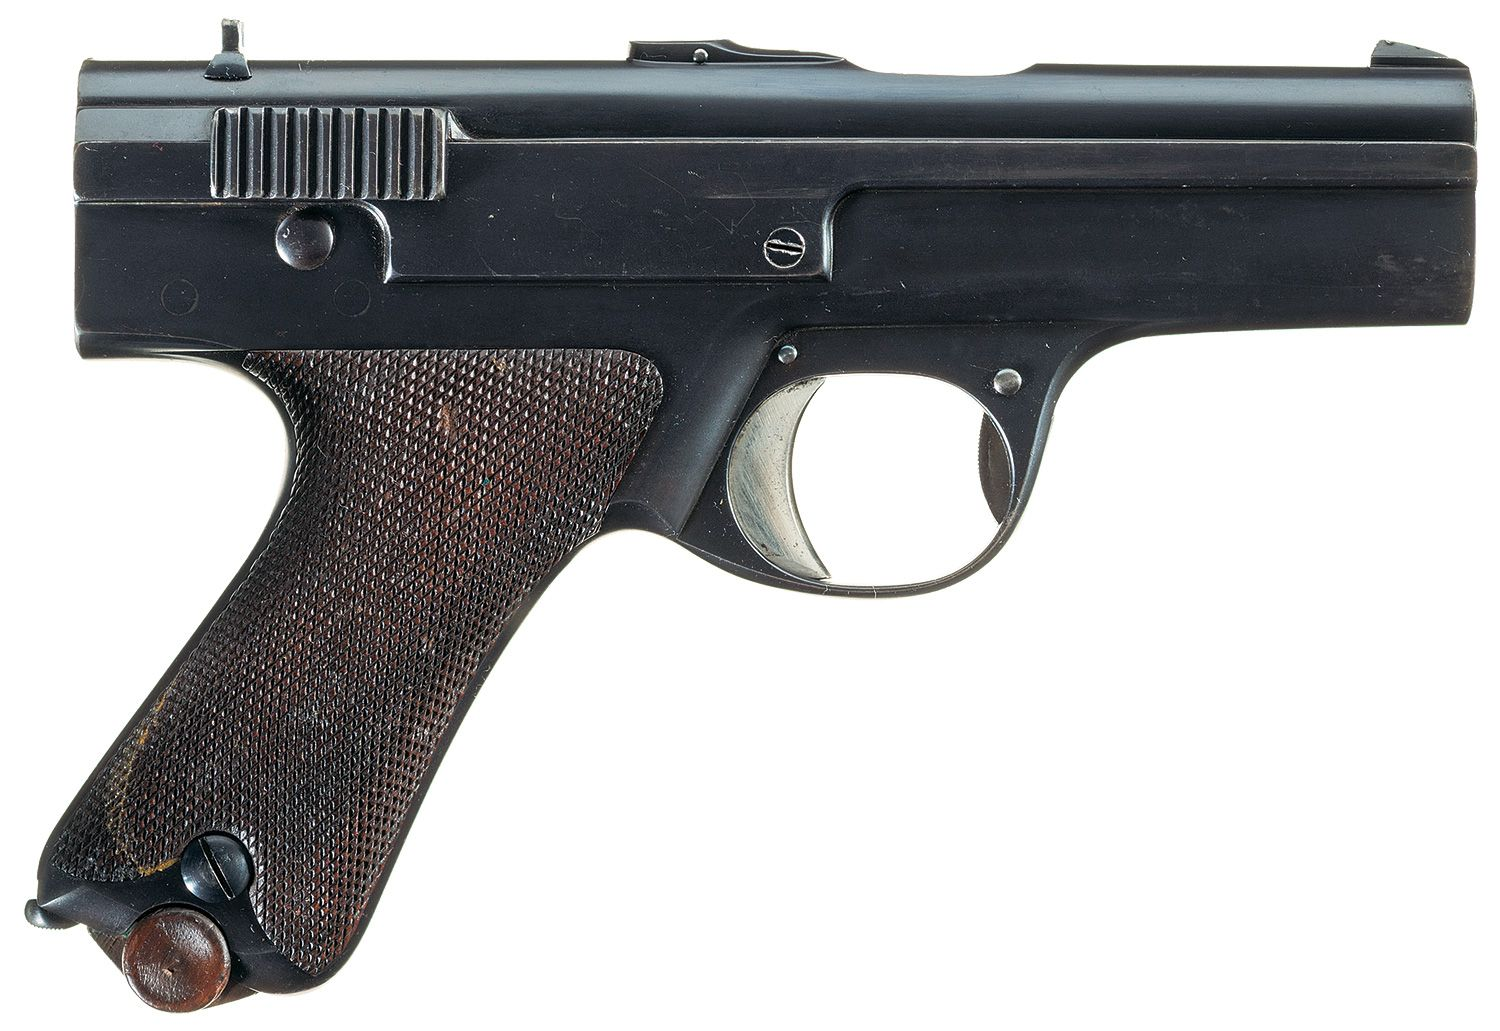 Spp 1 underwater pistol - Prototype 9mm Semi Automatic Pistol